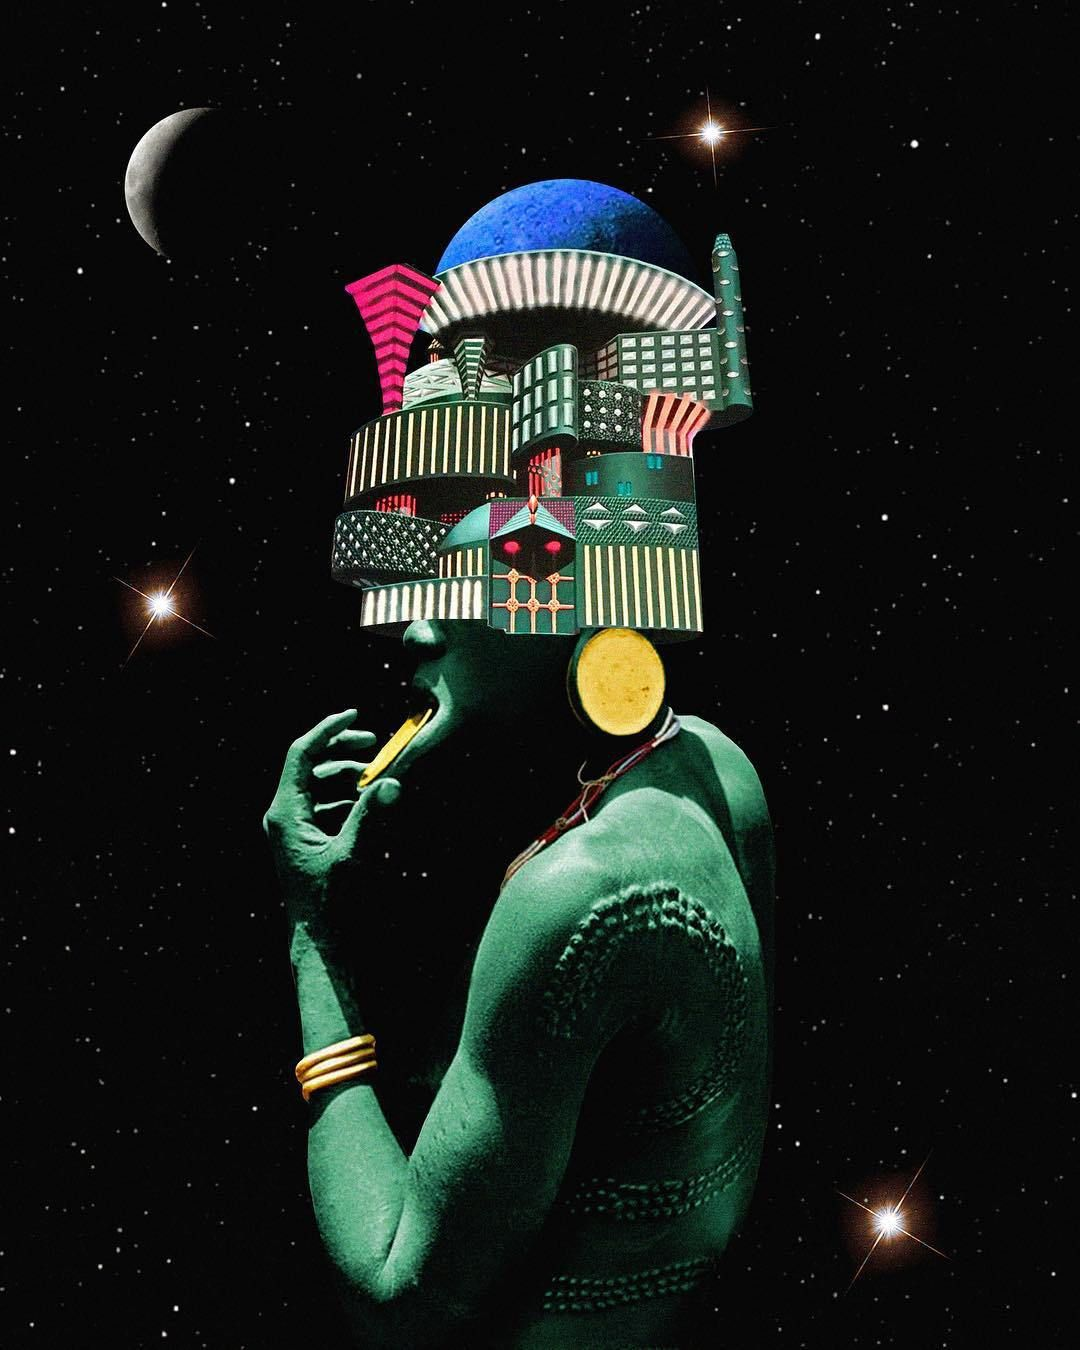 Pin By Pryce Jones On Intern Project Afrofuturism Art Afrocentric Art Futurism Art